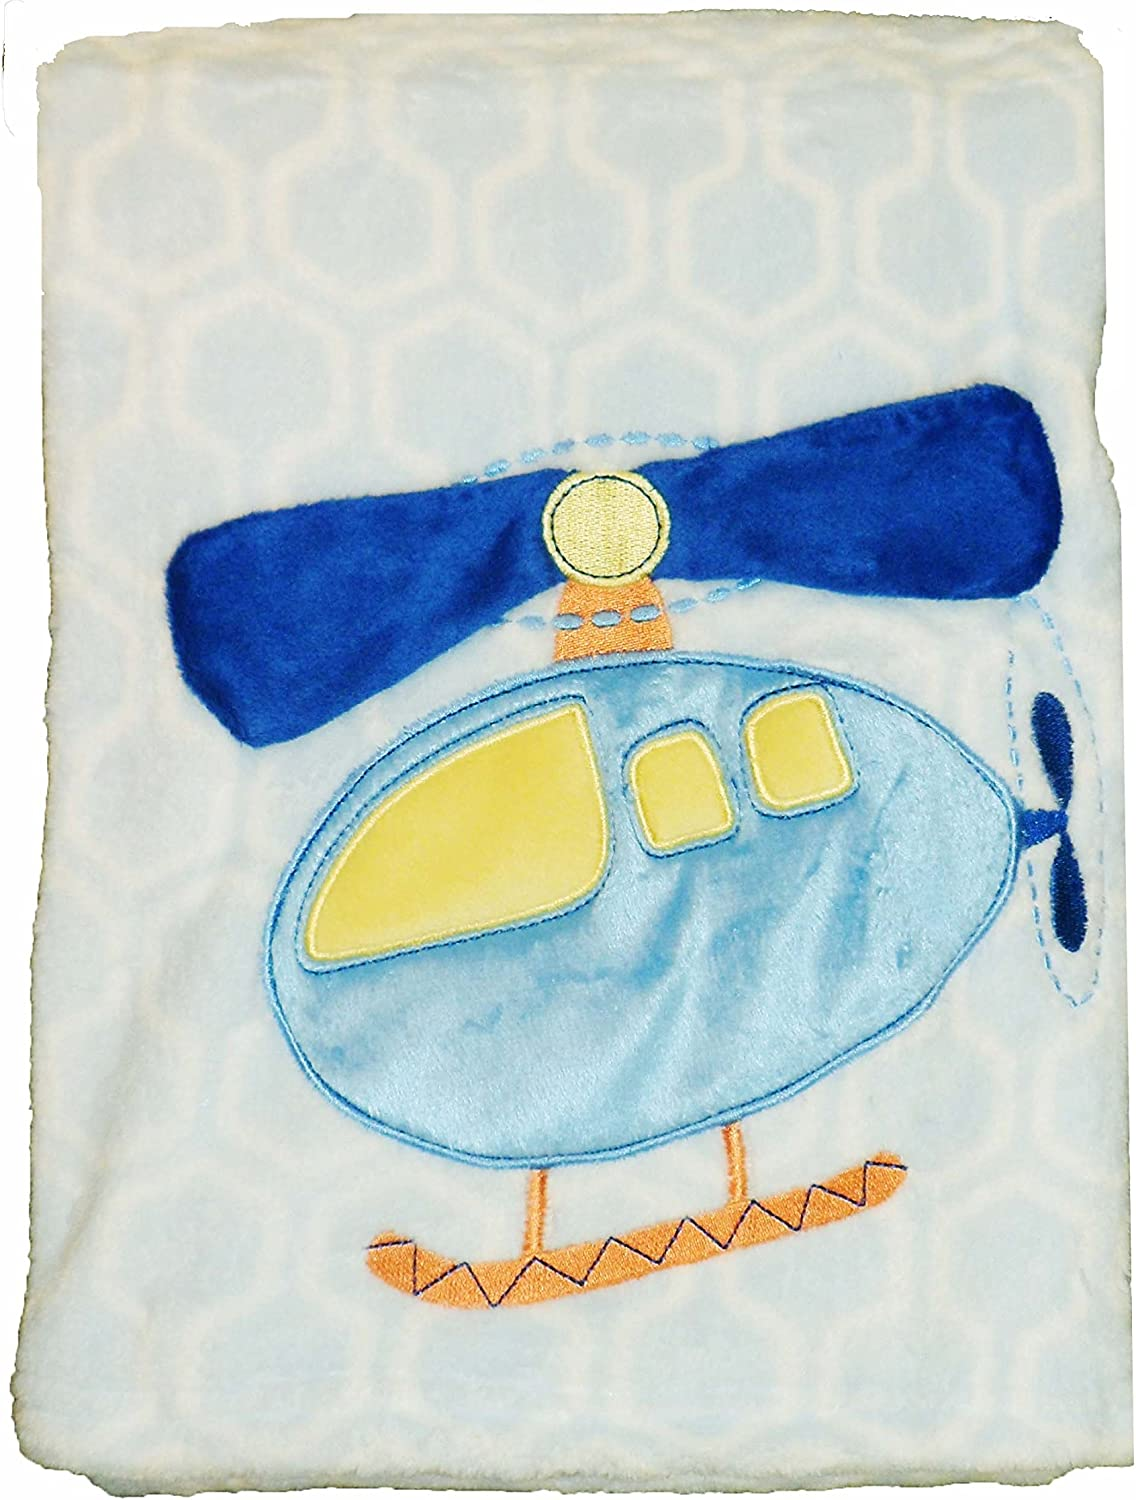 Supersoft Superior Quality Luxurious Blue Helicopter Pram//Crib Blanket